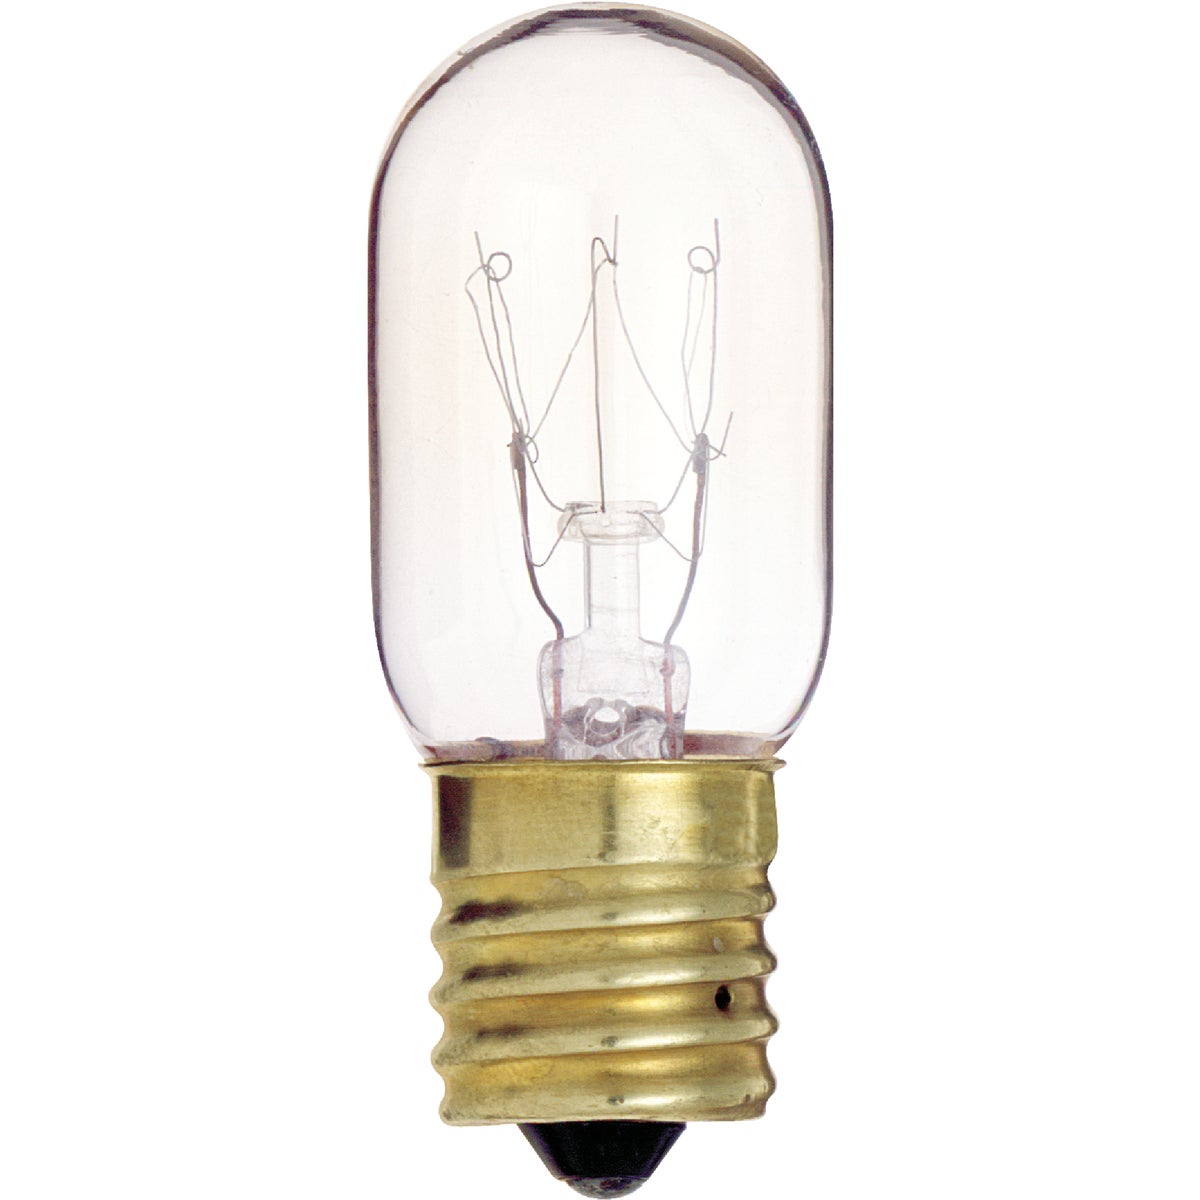 15W CLR APPLIANCE BULB - 35153 by G E Lighting